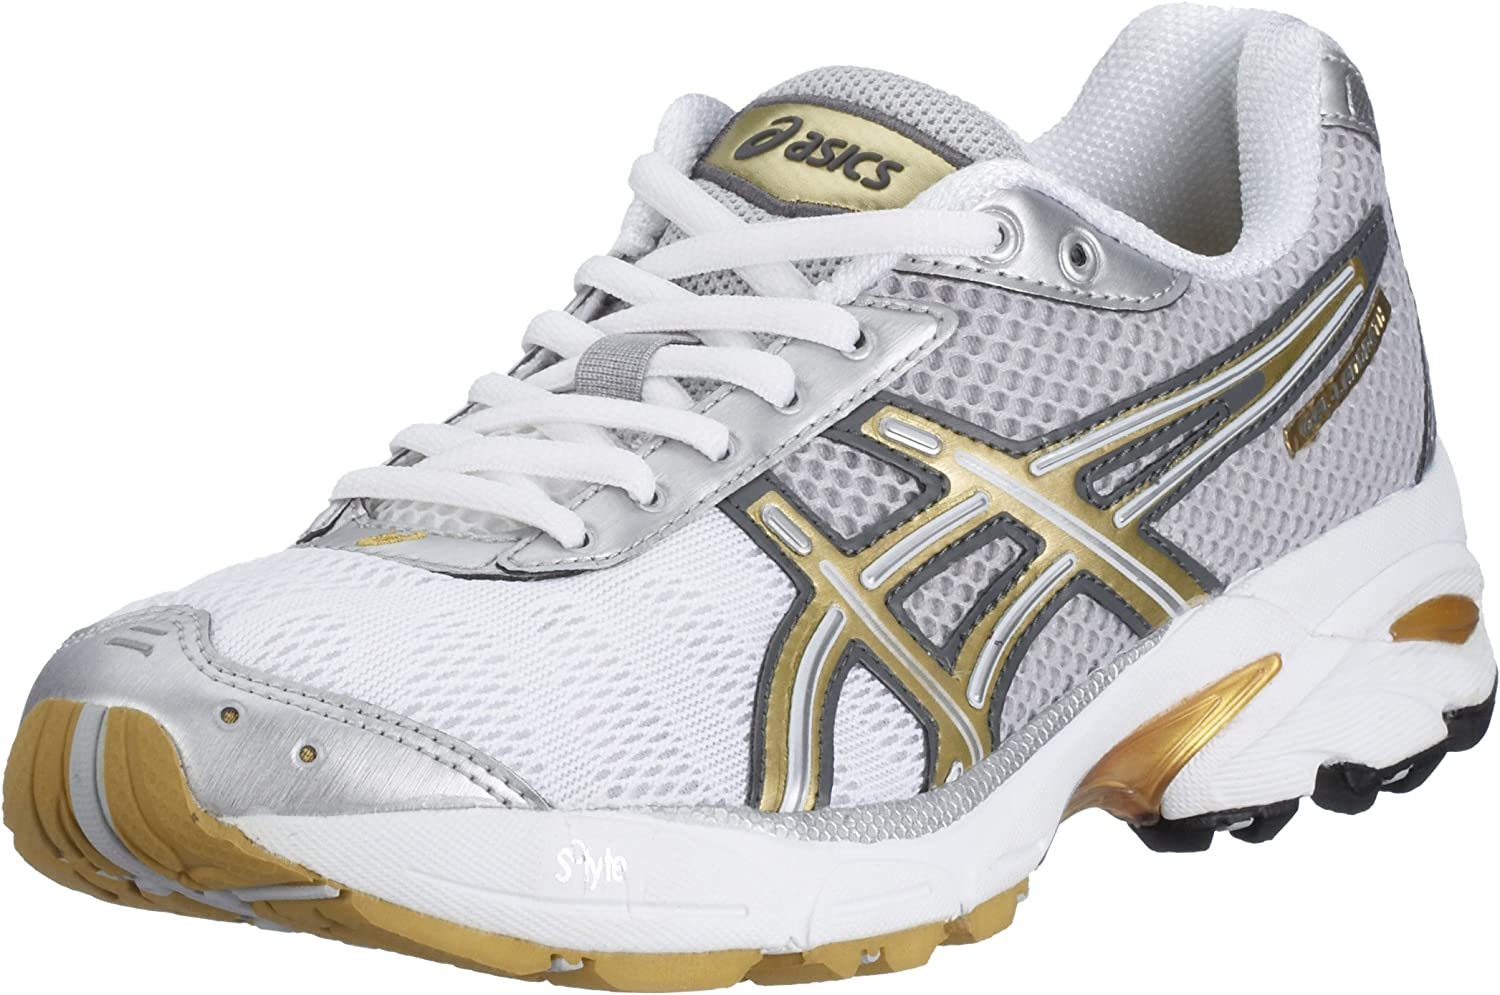 Asics Gel País Reth 3 tn760 – 9294 – Zapatillas de Running para Mujer, Color Blanco (Platinum 9294), Color Blanco, Talla 40.5 EU: Amazon.es: Zapatos y complementos